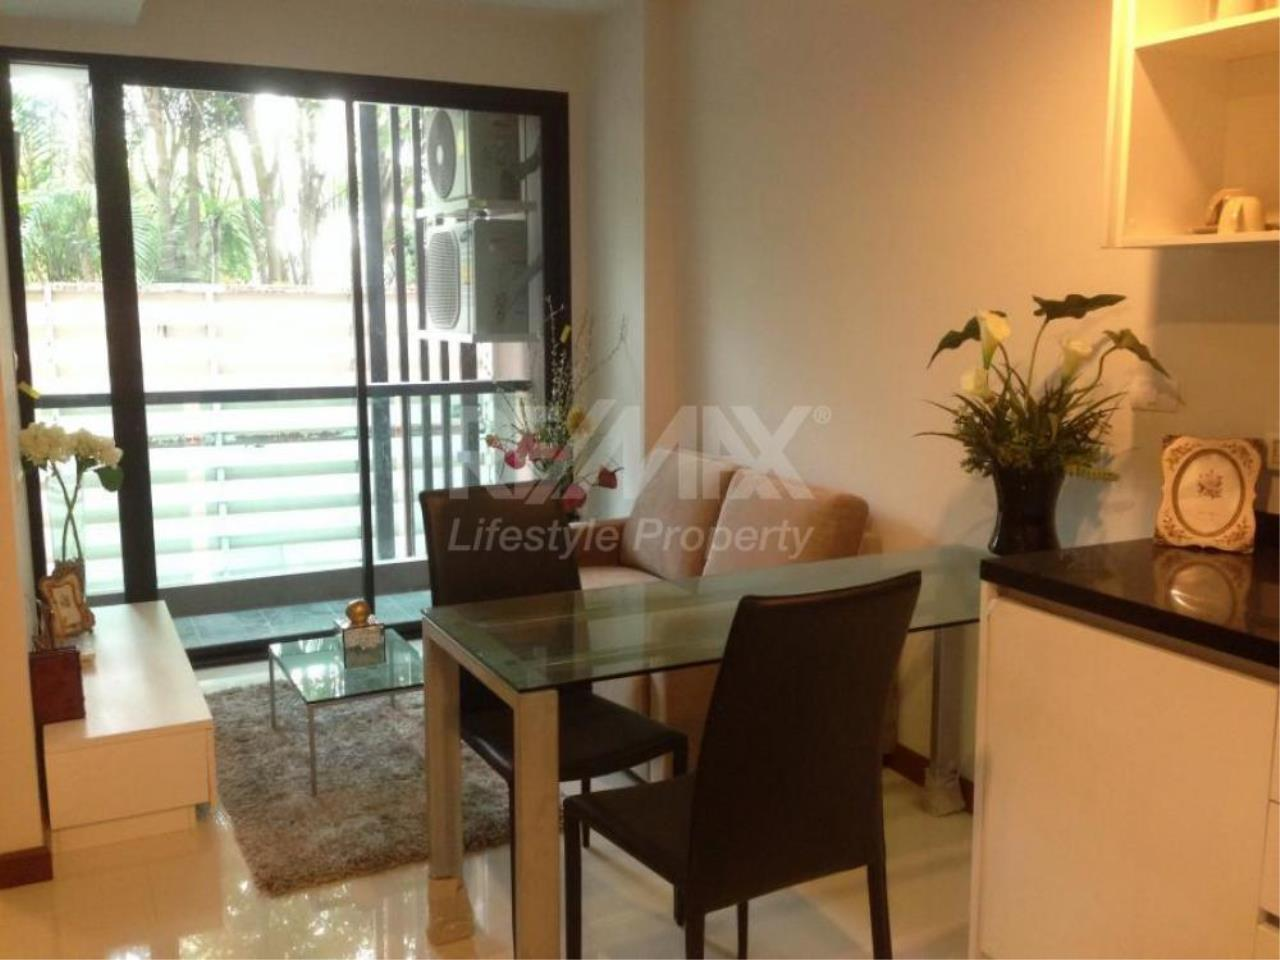 RE/MAX LifeStyle Property Agency's Le Cote Thonglor 8 1